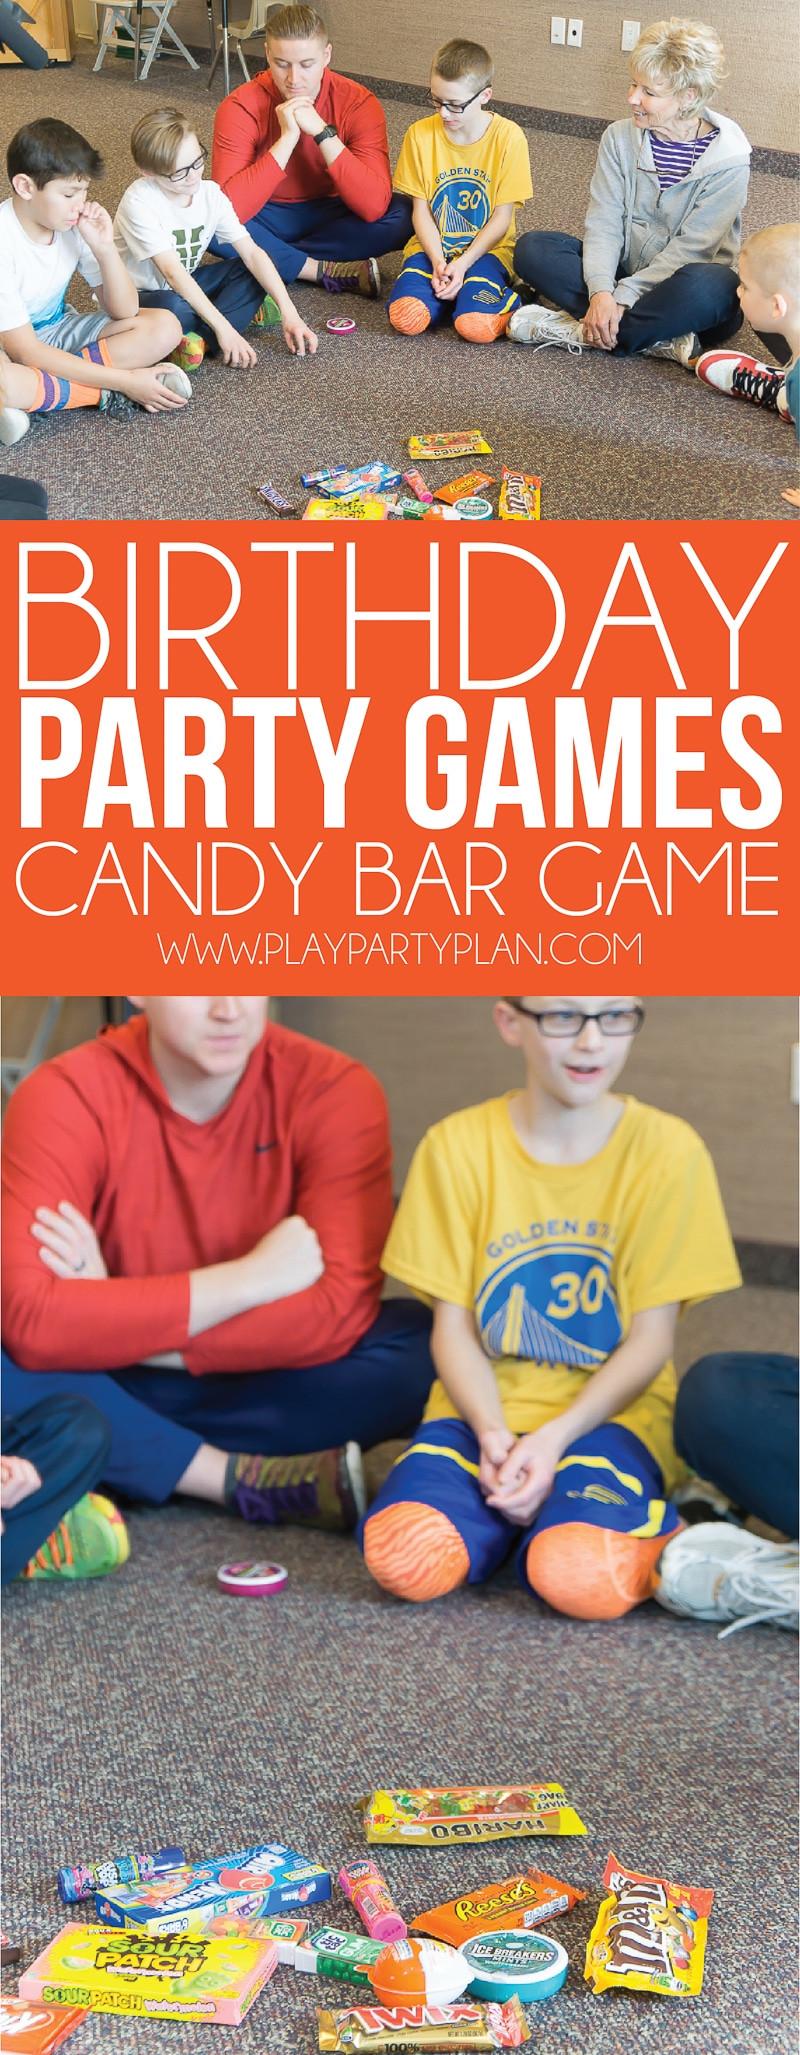 Best ideas about Child Birthday Party Game . Save or Pin Hilarious Birthday Party Games for Kids & Adults Play Now.